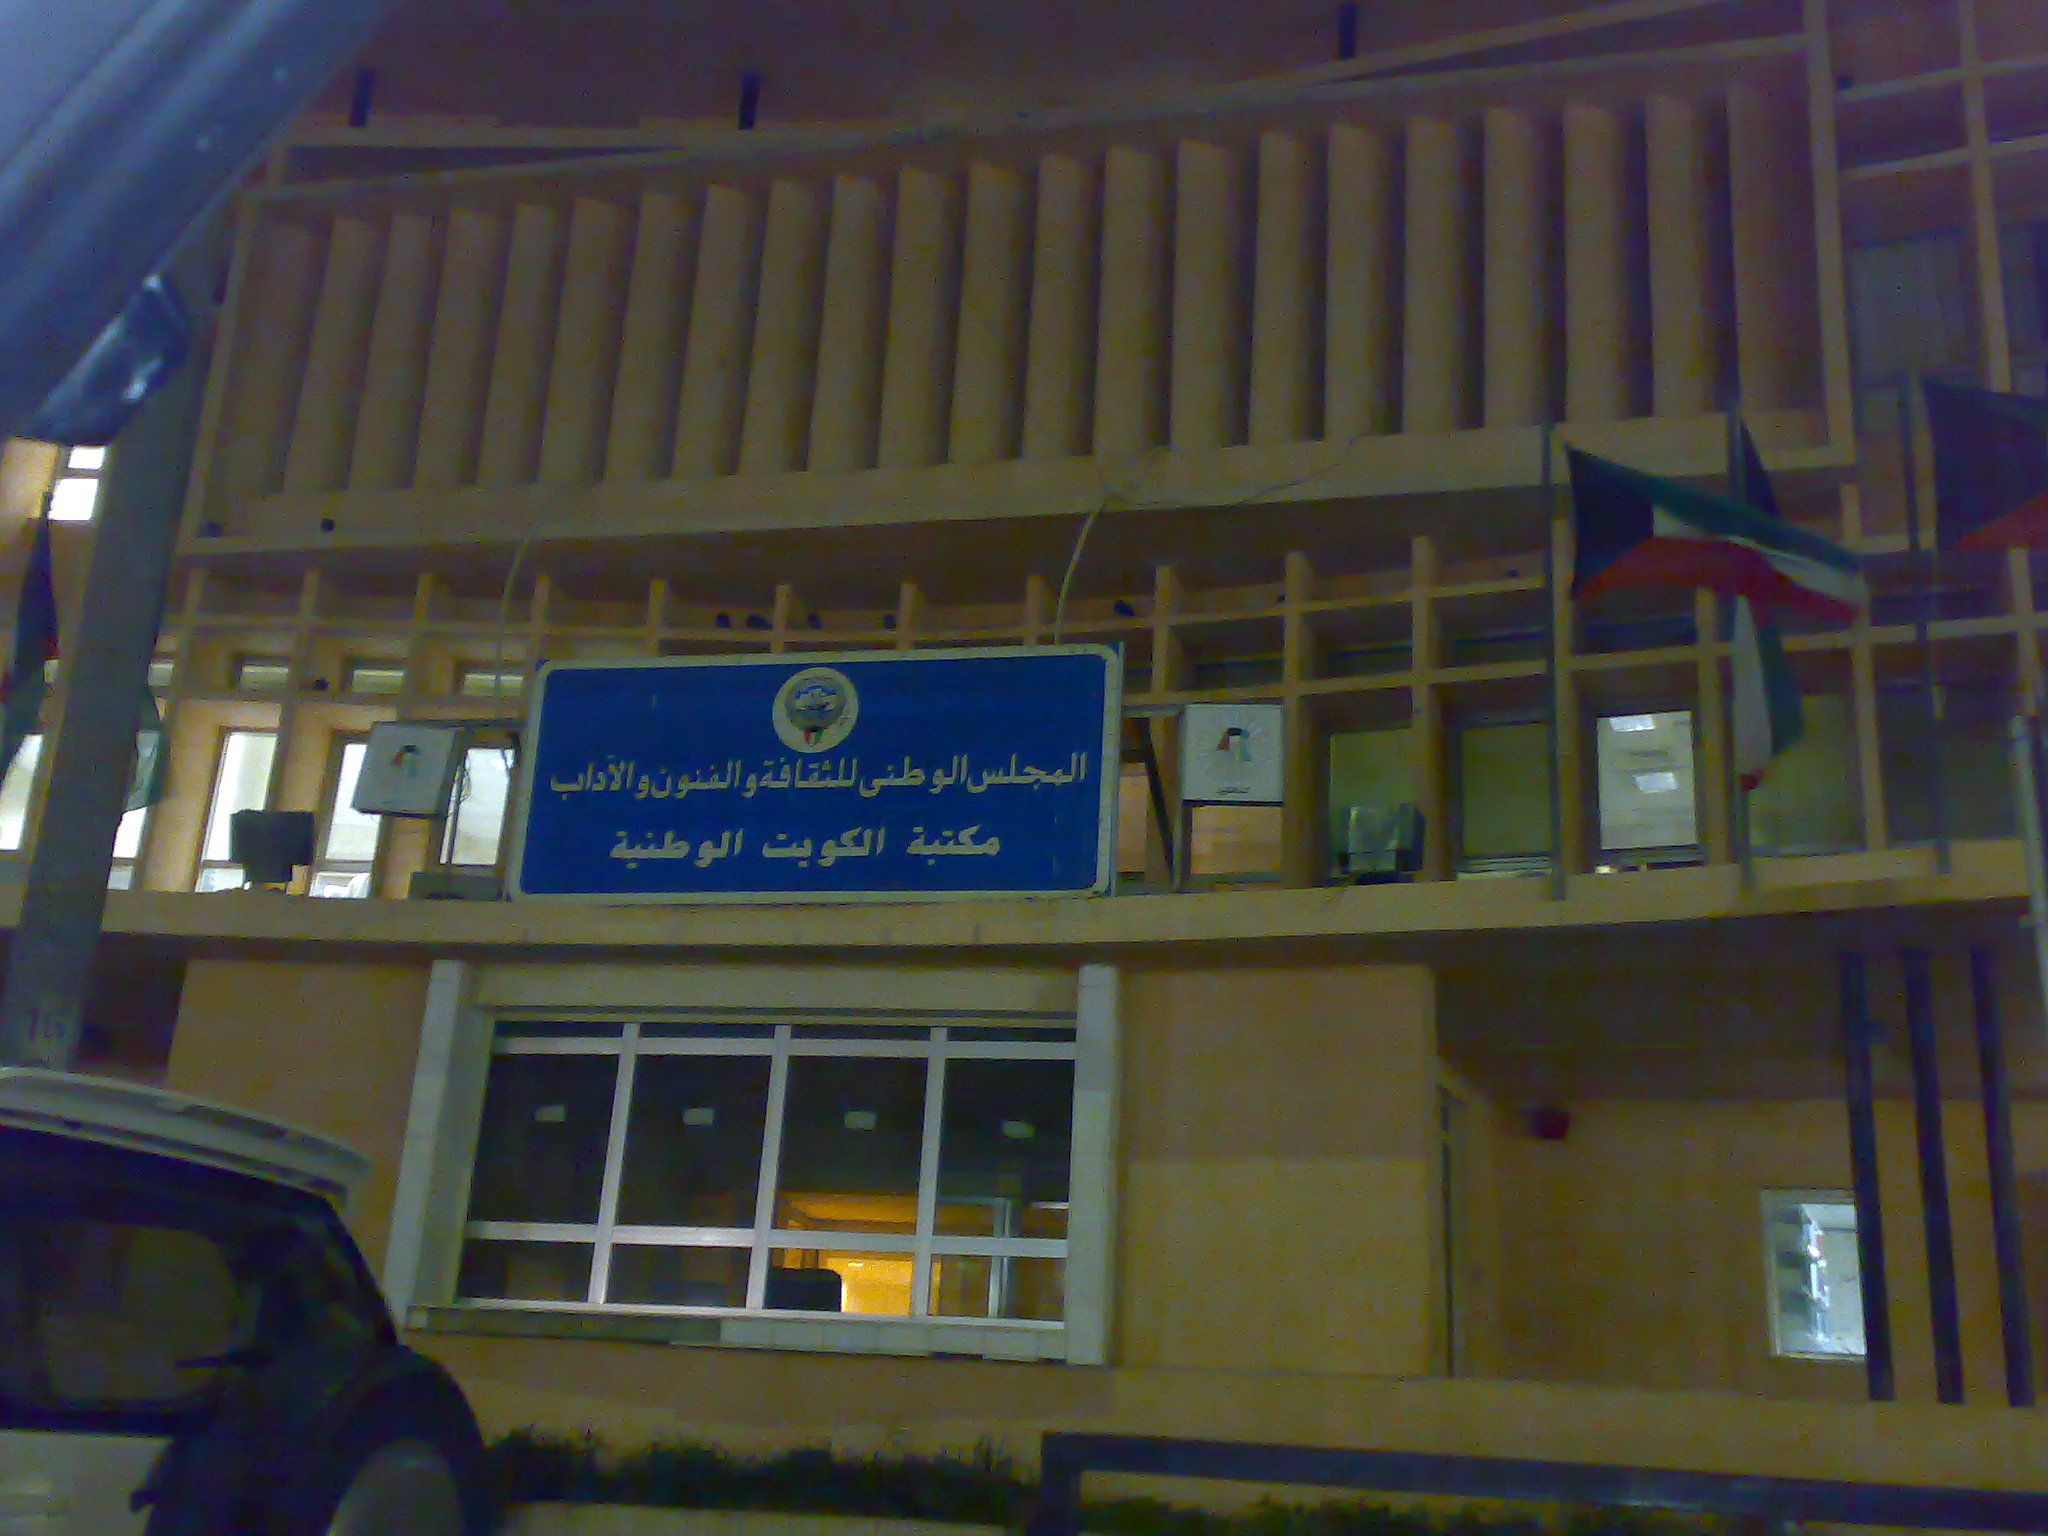 Kuwait National Library